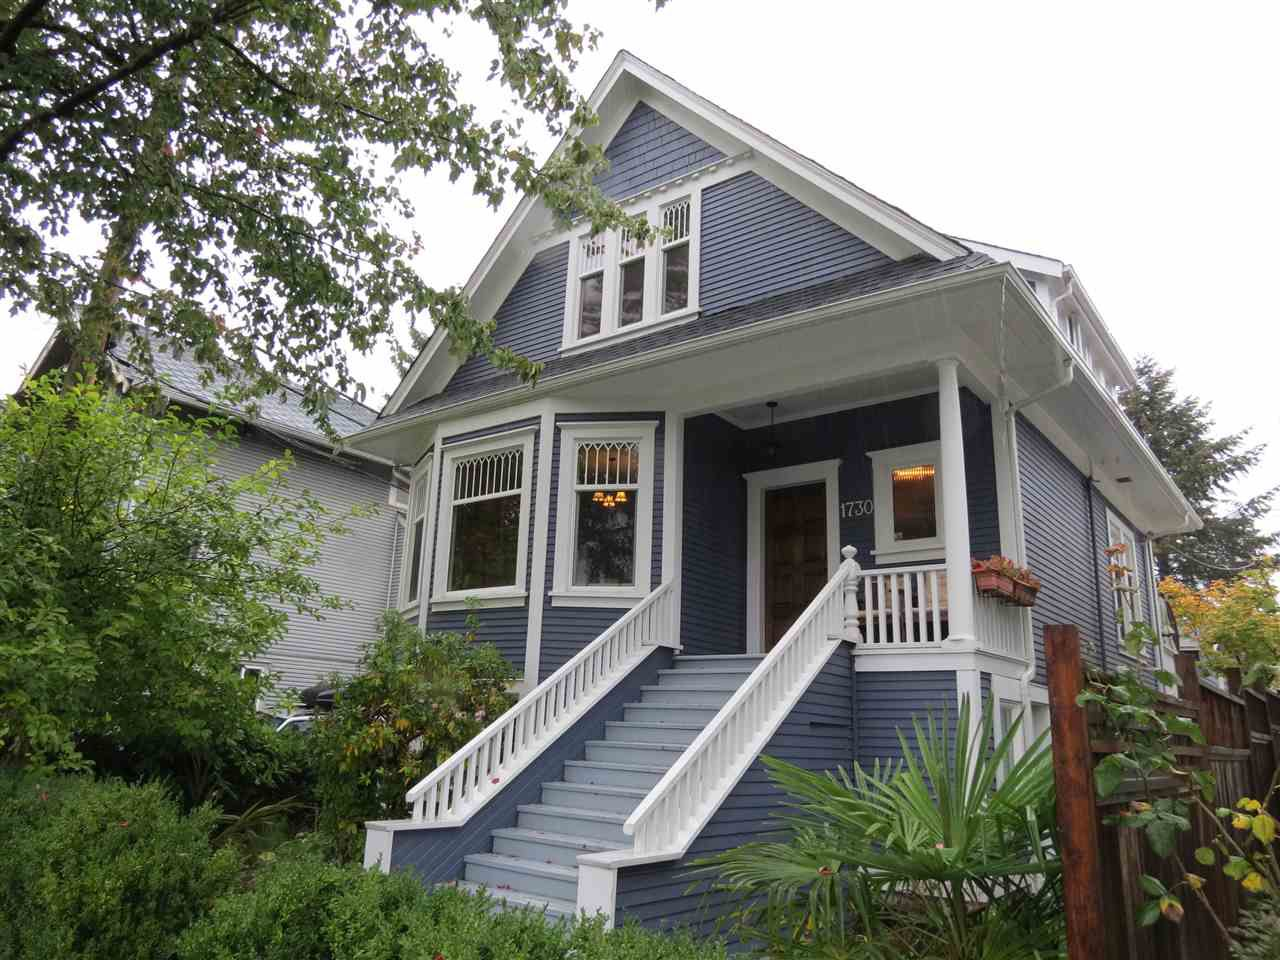 Main Photo: 1730 VICTORIA Drive in Vancouver: Grandview VE House for sale (Vancouver East)  : MLS®# R2119516